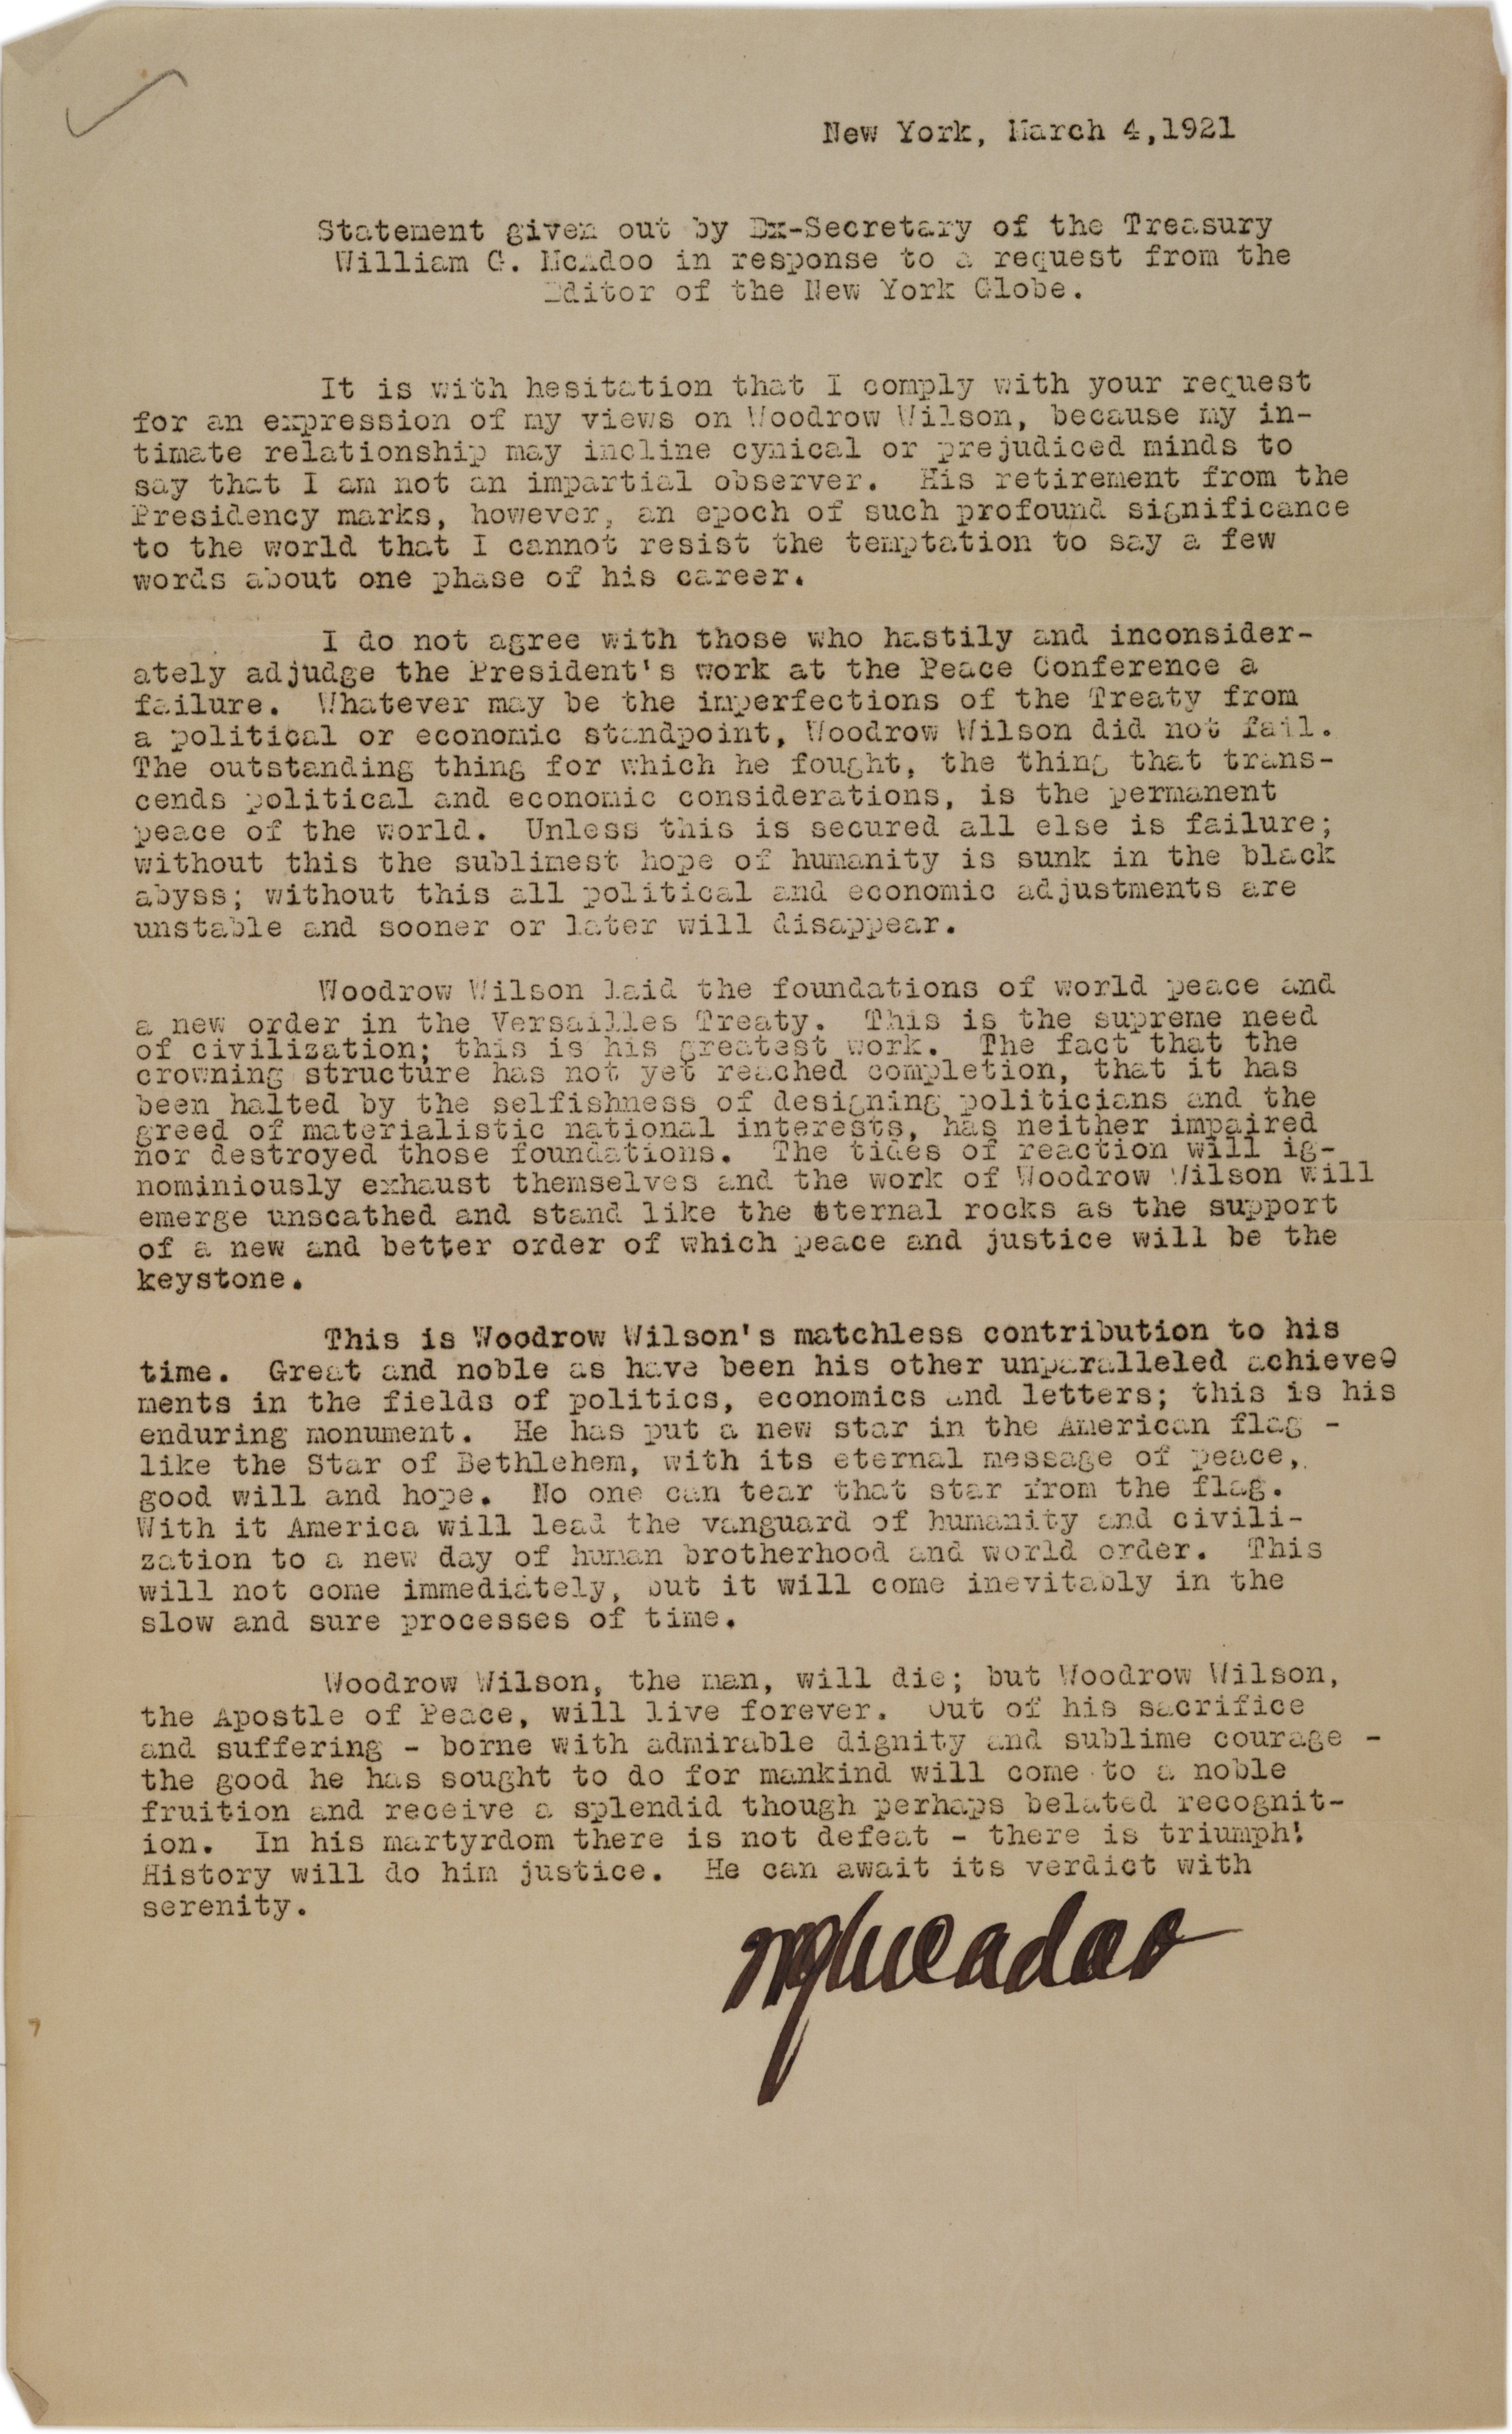 Press statement re: Woodrow Wilson's work at the Peace Conference (Versailles),